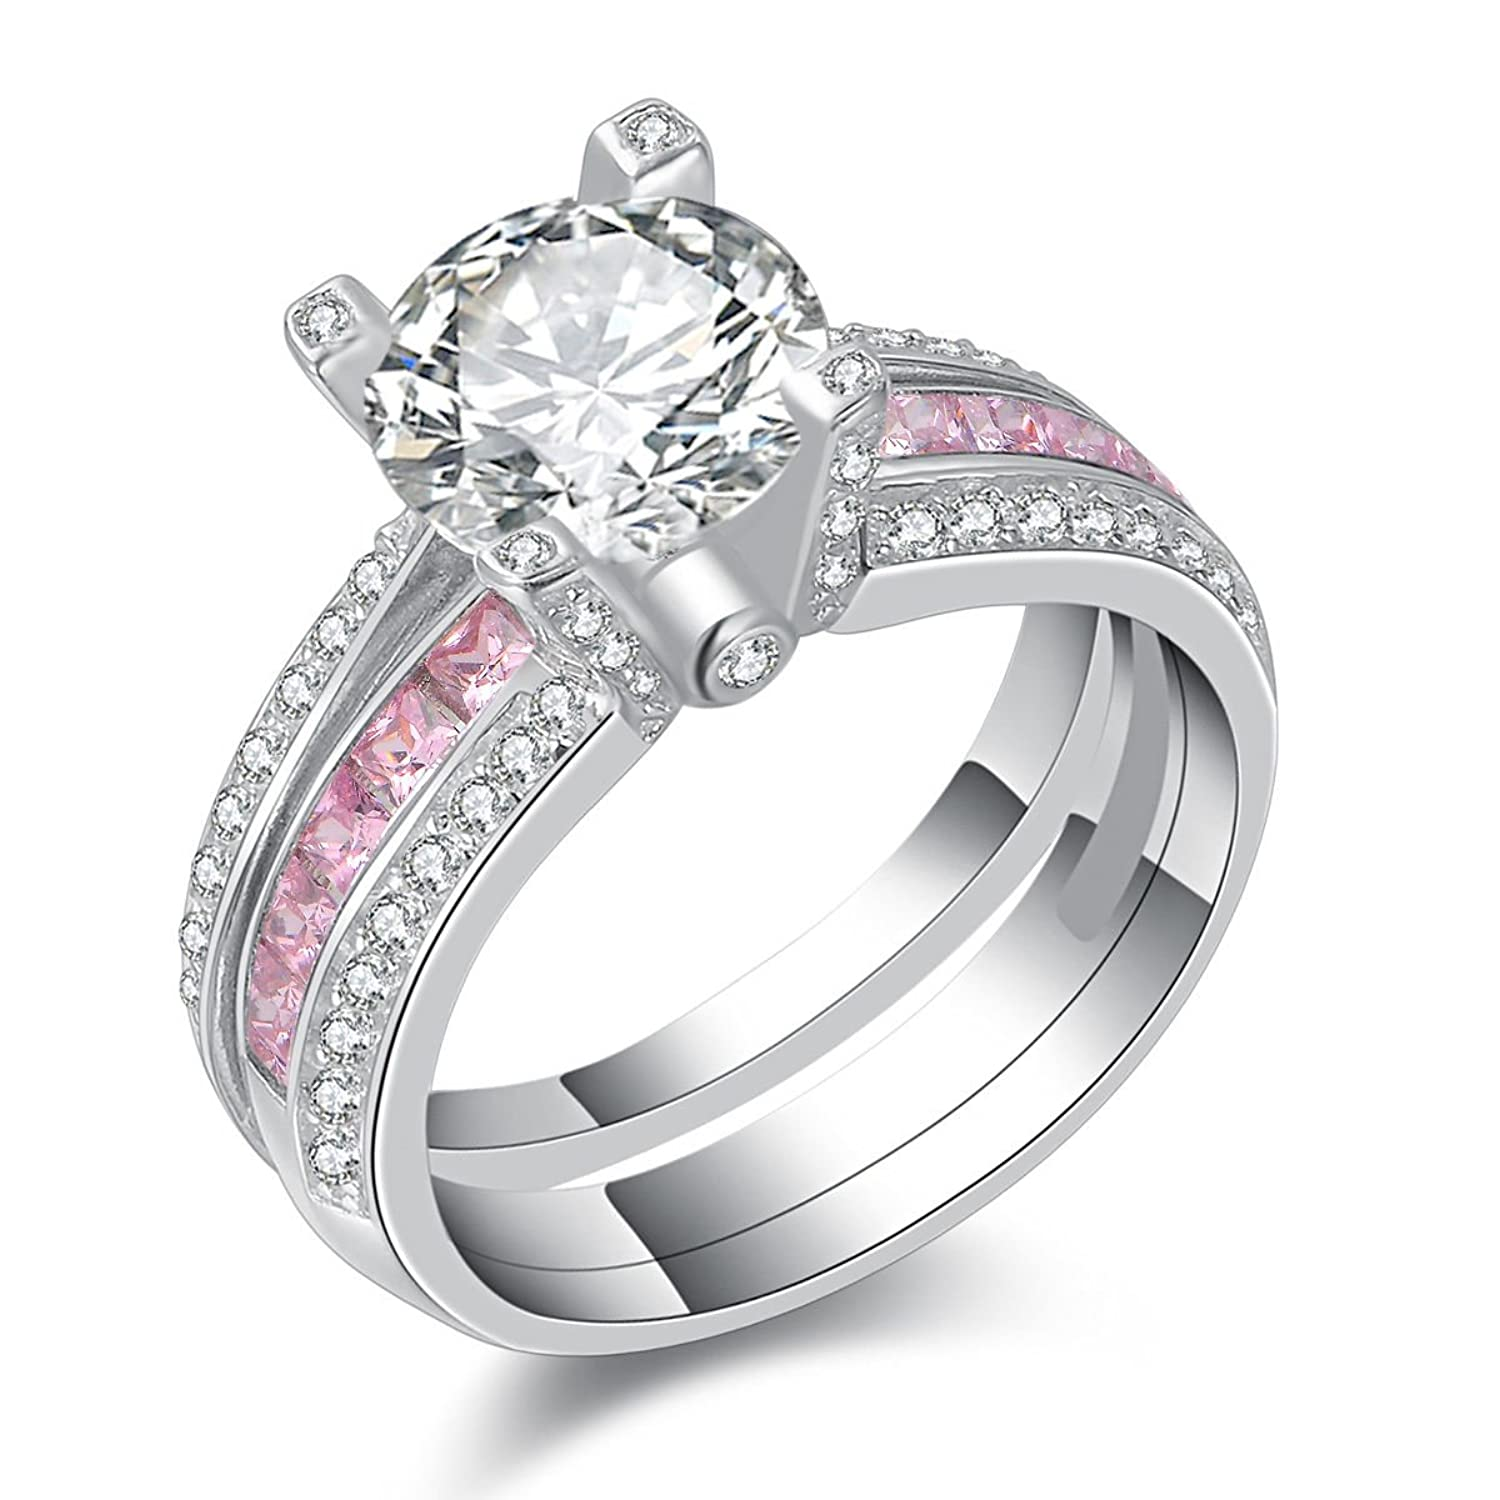 rings ring engagement stephanie fine products jewelry gottlieb open band double img